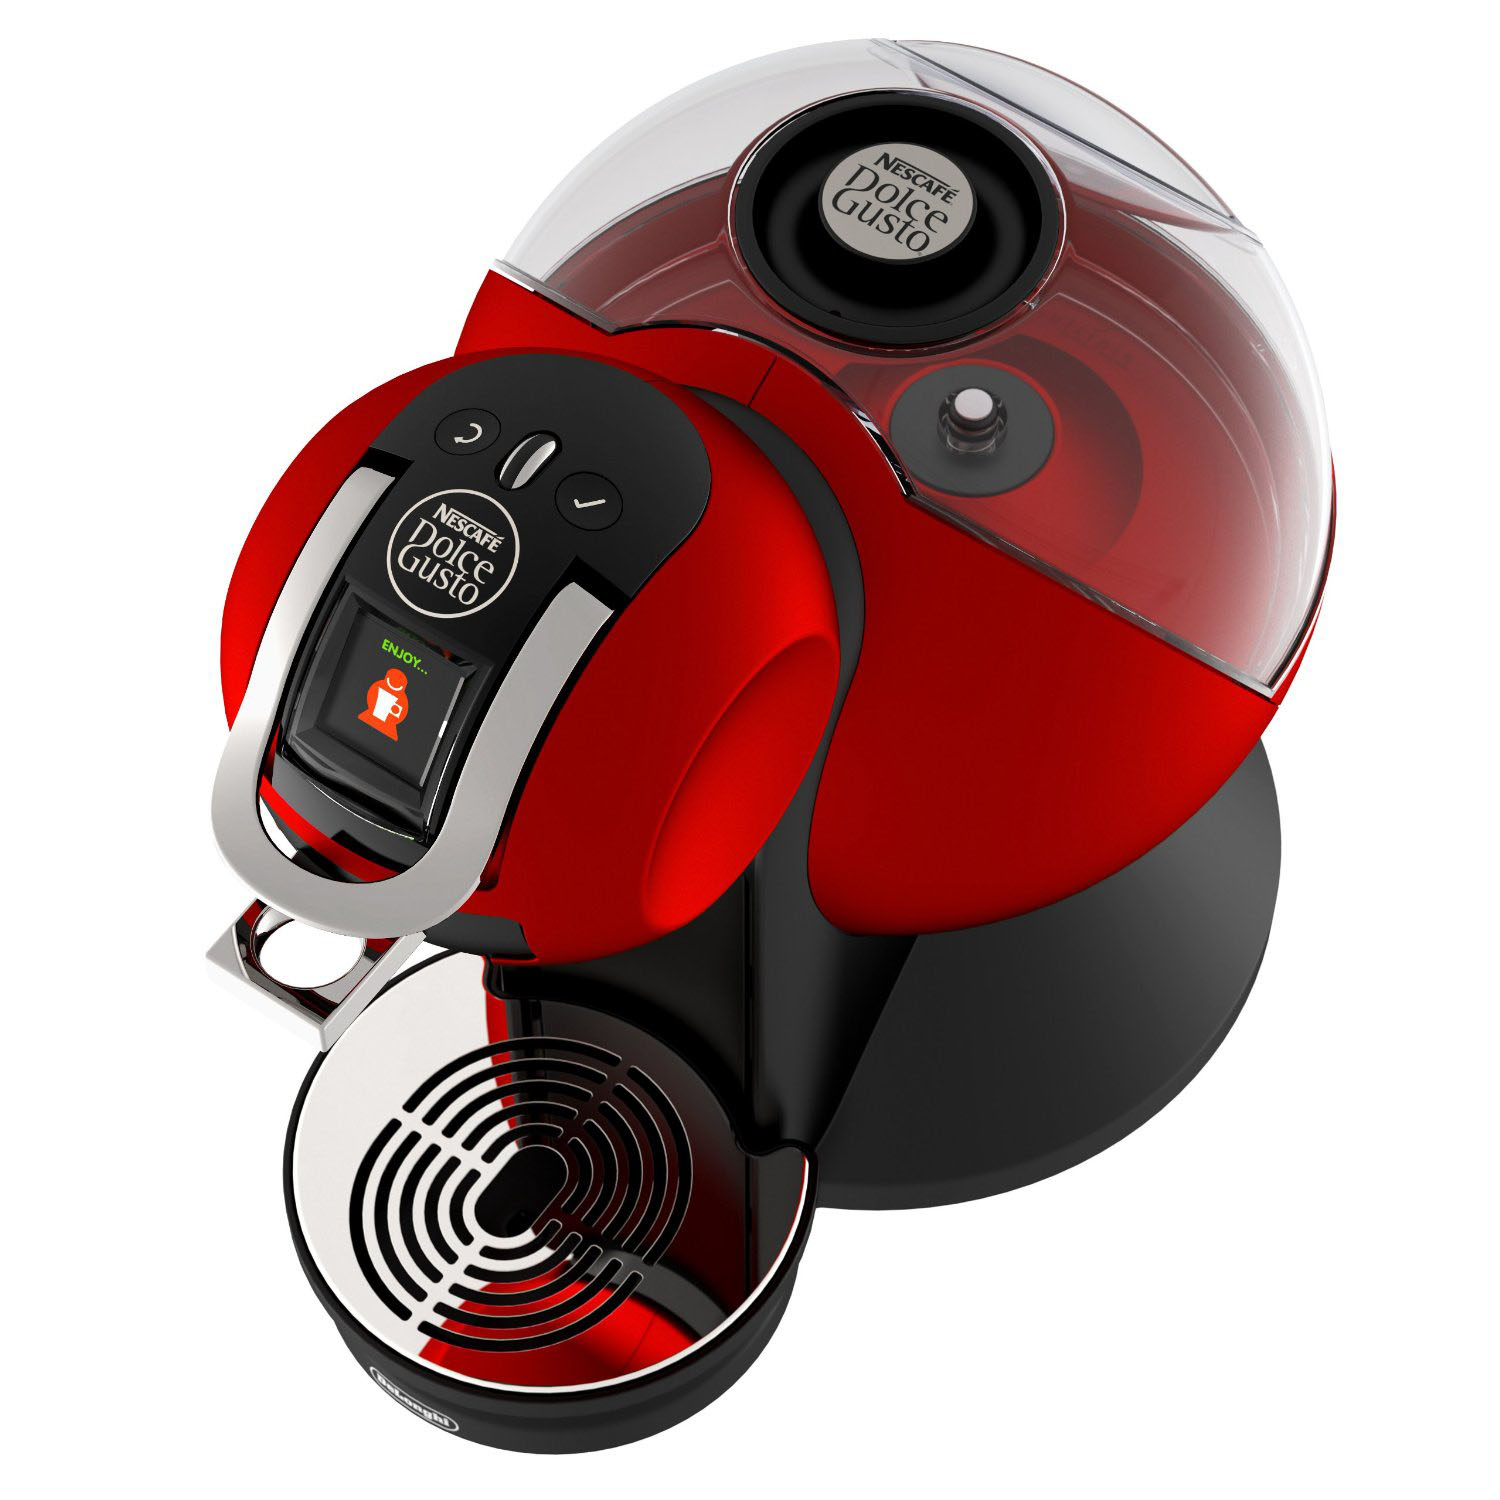 DeLonghi-Creativa-Plus-Coffeemaker